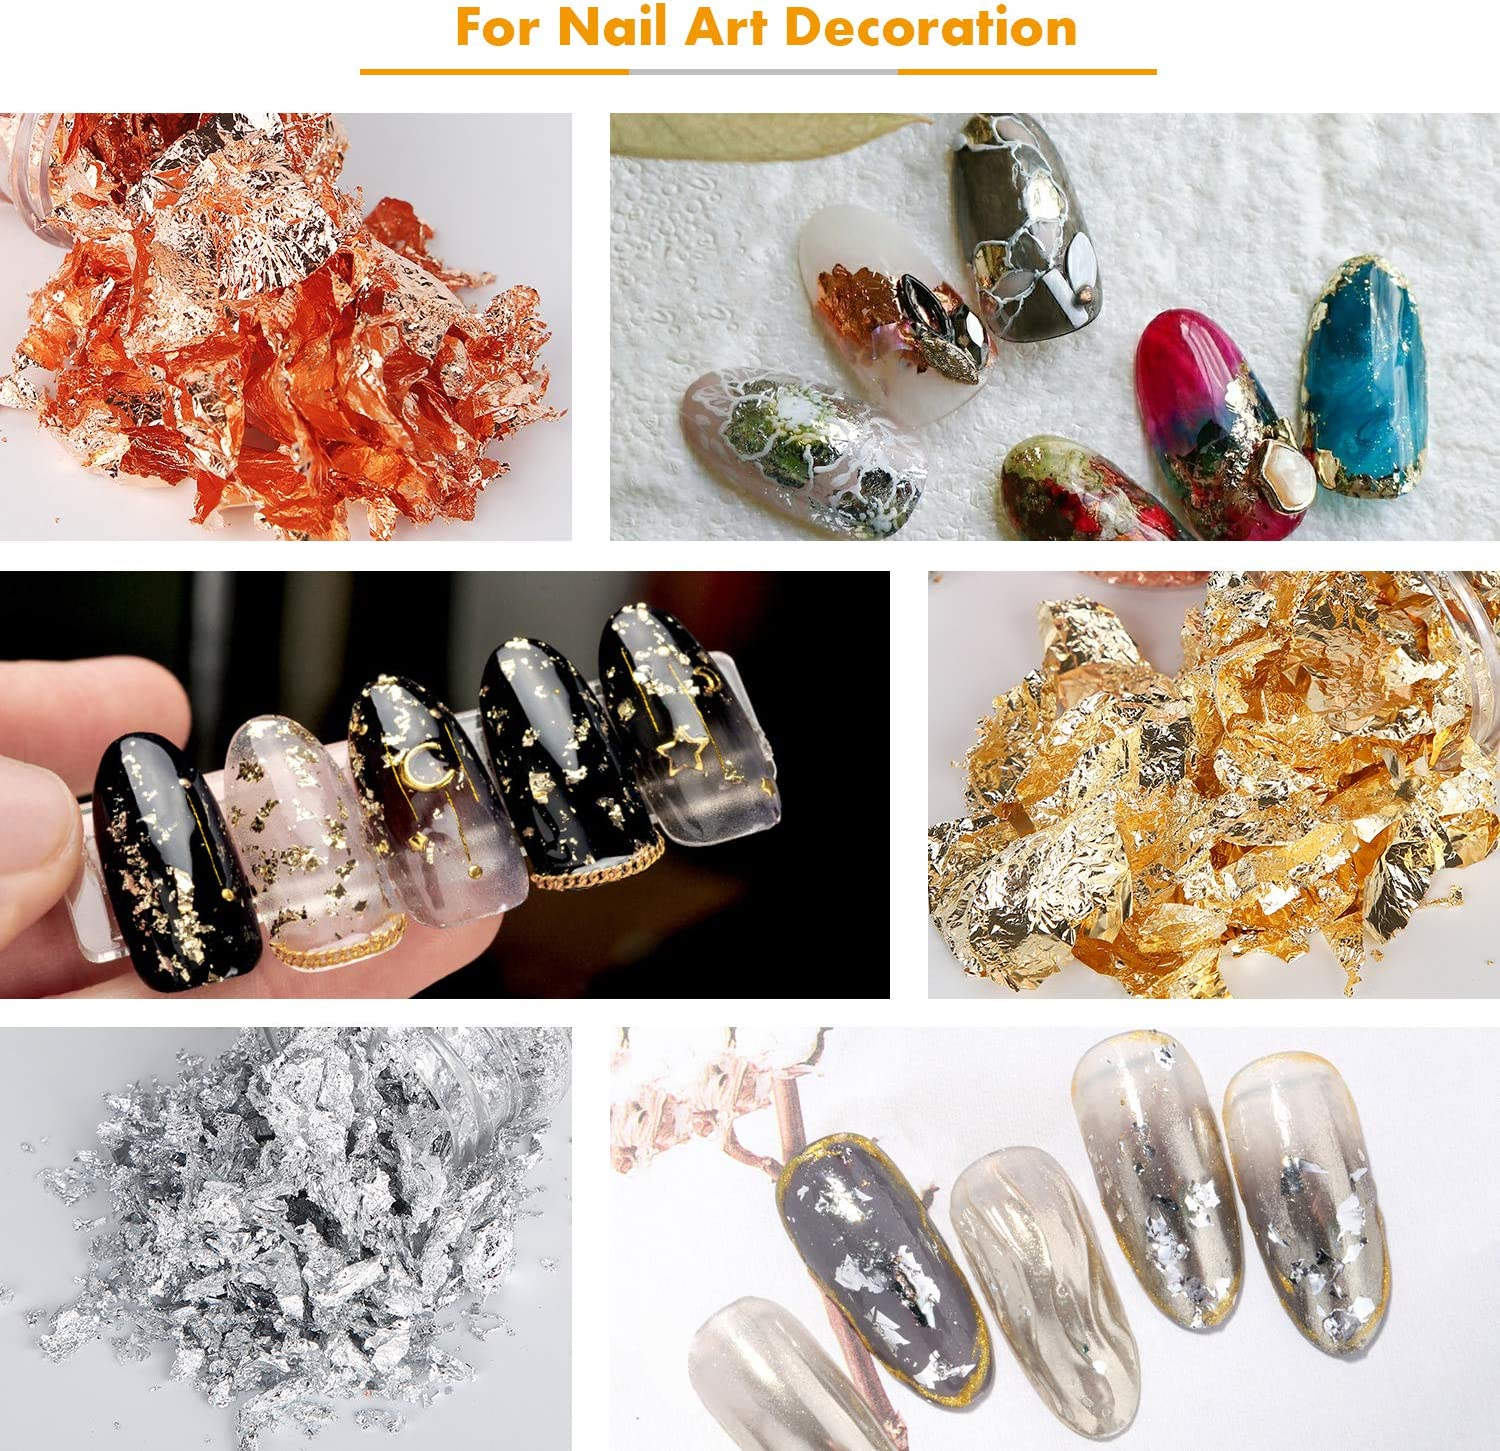 Slime and Resin Jewelry Making Crafts Gold Foil Flakes for Resin 3 Grams Painting Paxcoo Imitation Gold Foil Flakes Metallic Leaf for Nails